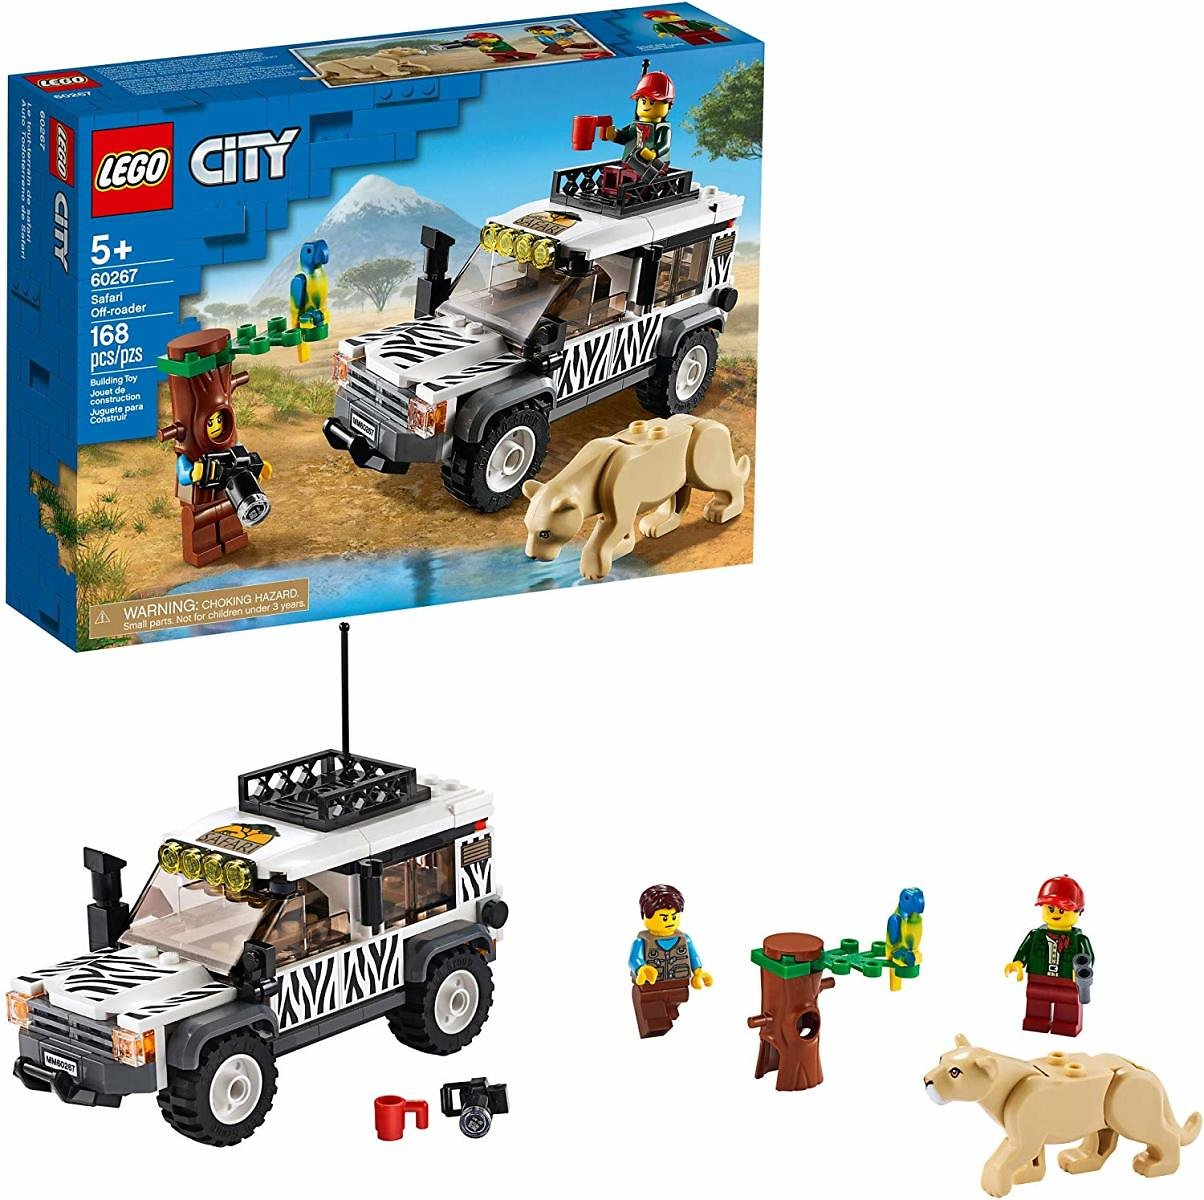 LEGO City Safari Off-Roader 60267 Off-Road Toy, New 2020 (168 Pieces)